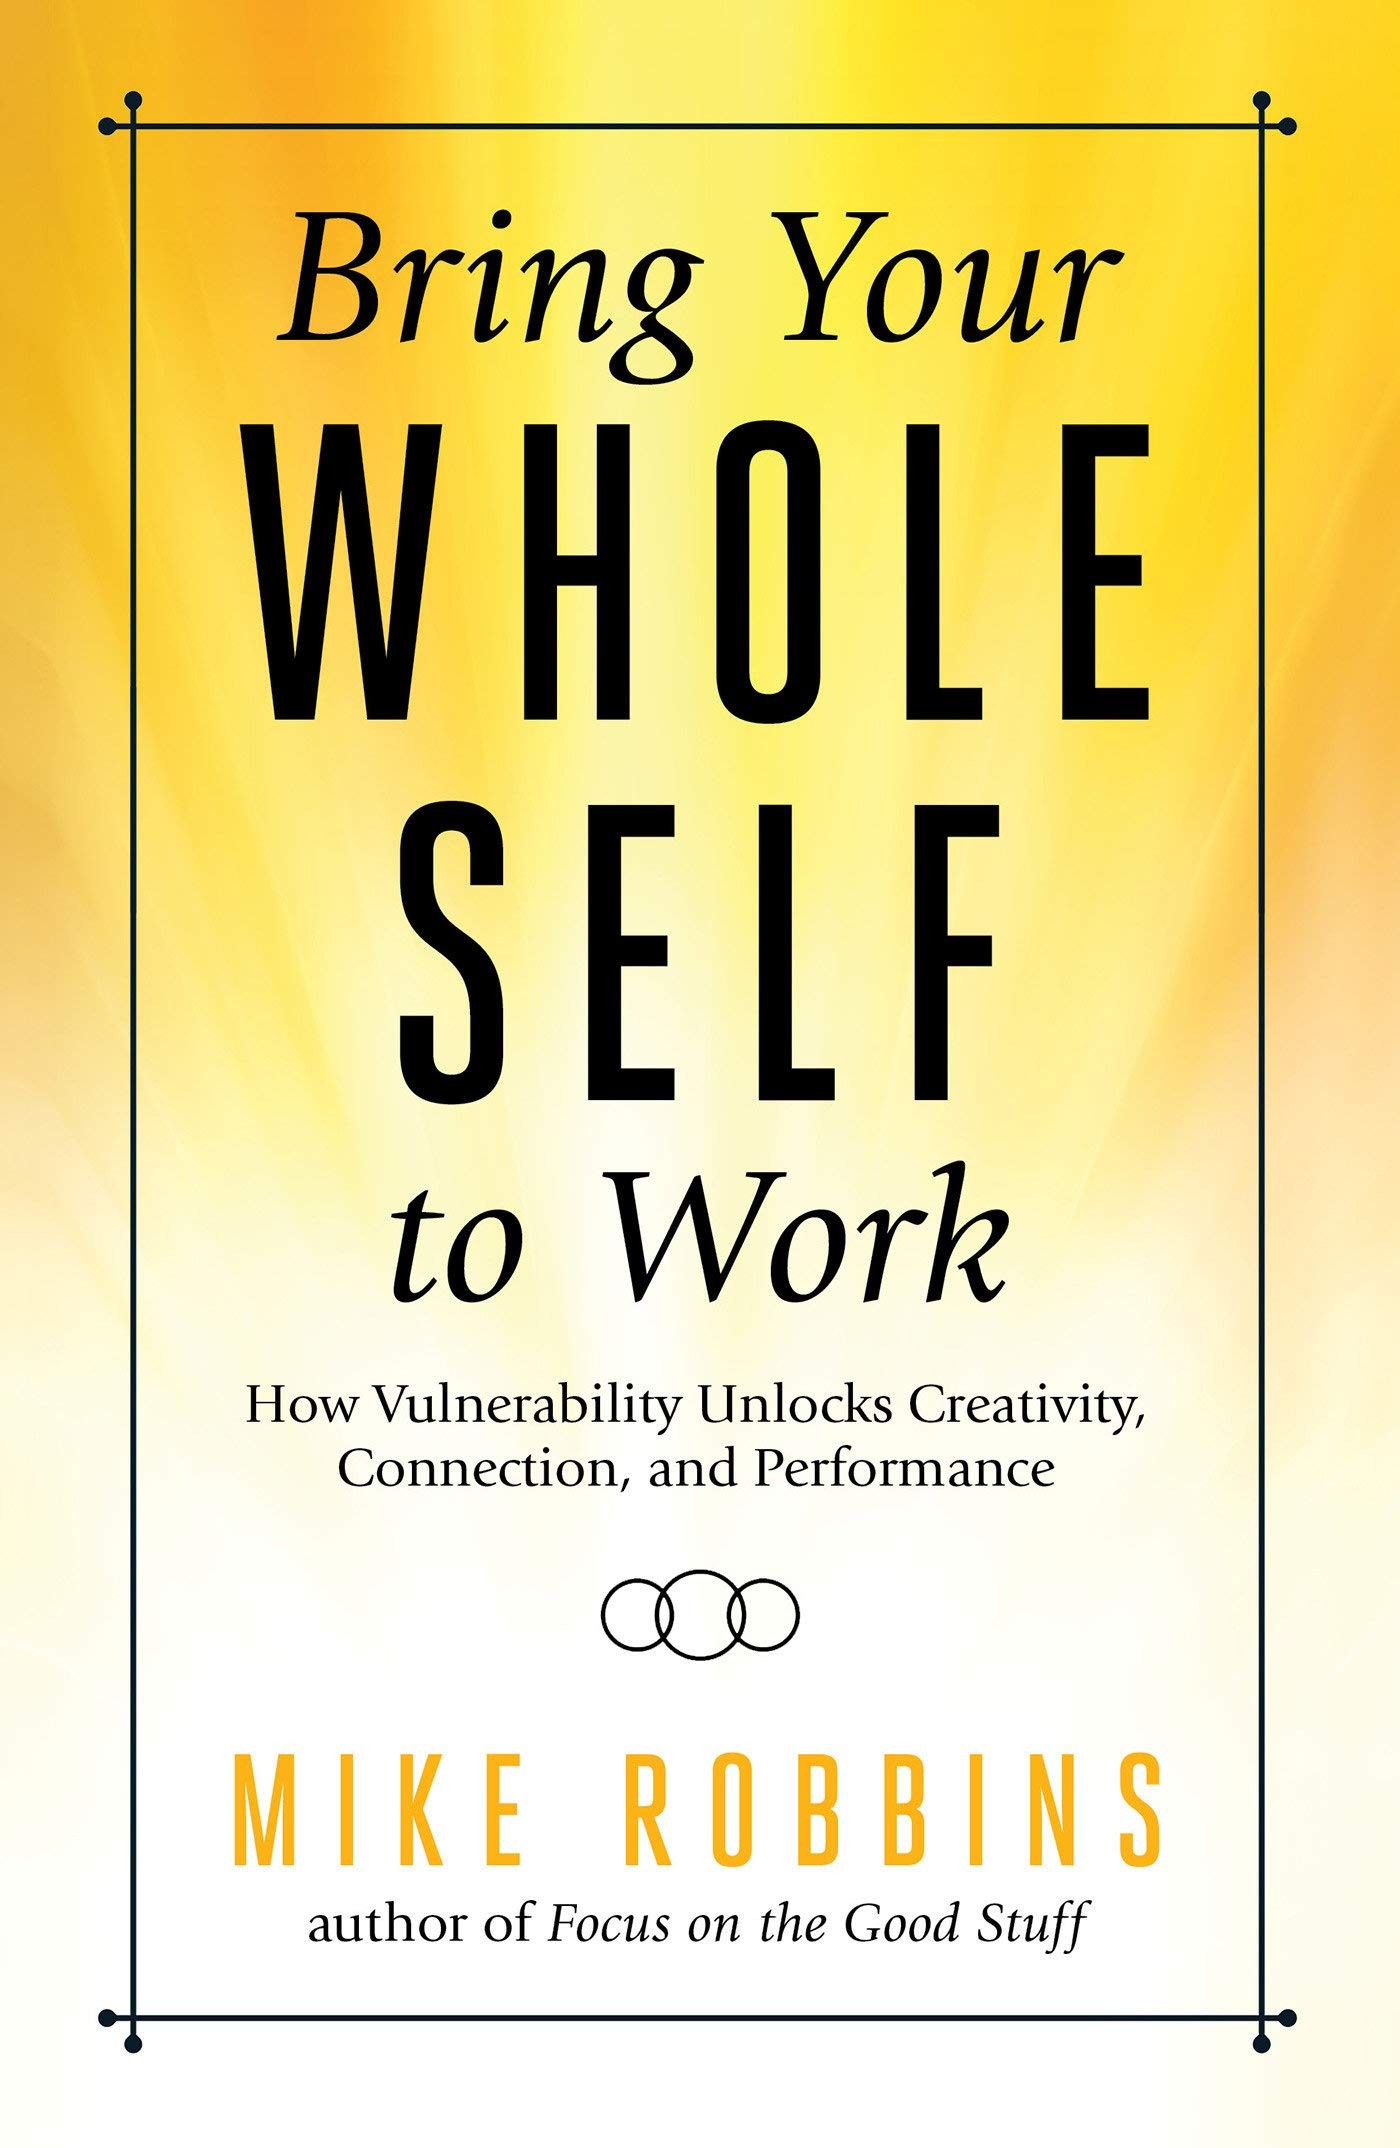 Bring Your Whole Self to Work: How Vulnerability Unlocks Creativity, Connection, and Performance Text fb2 book